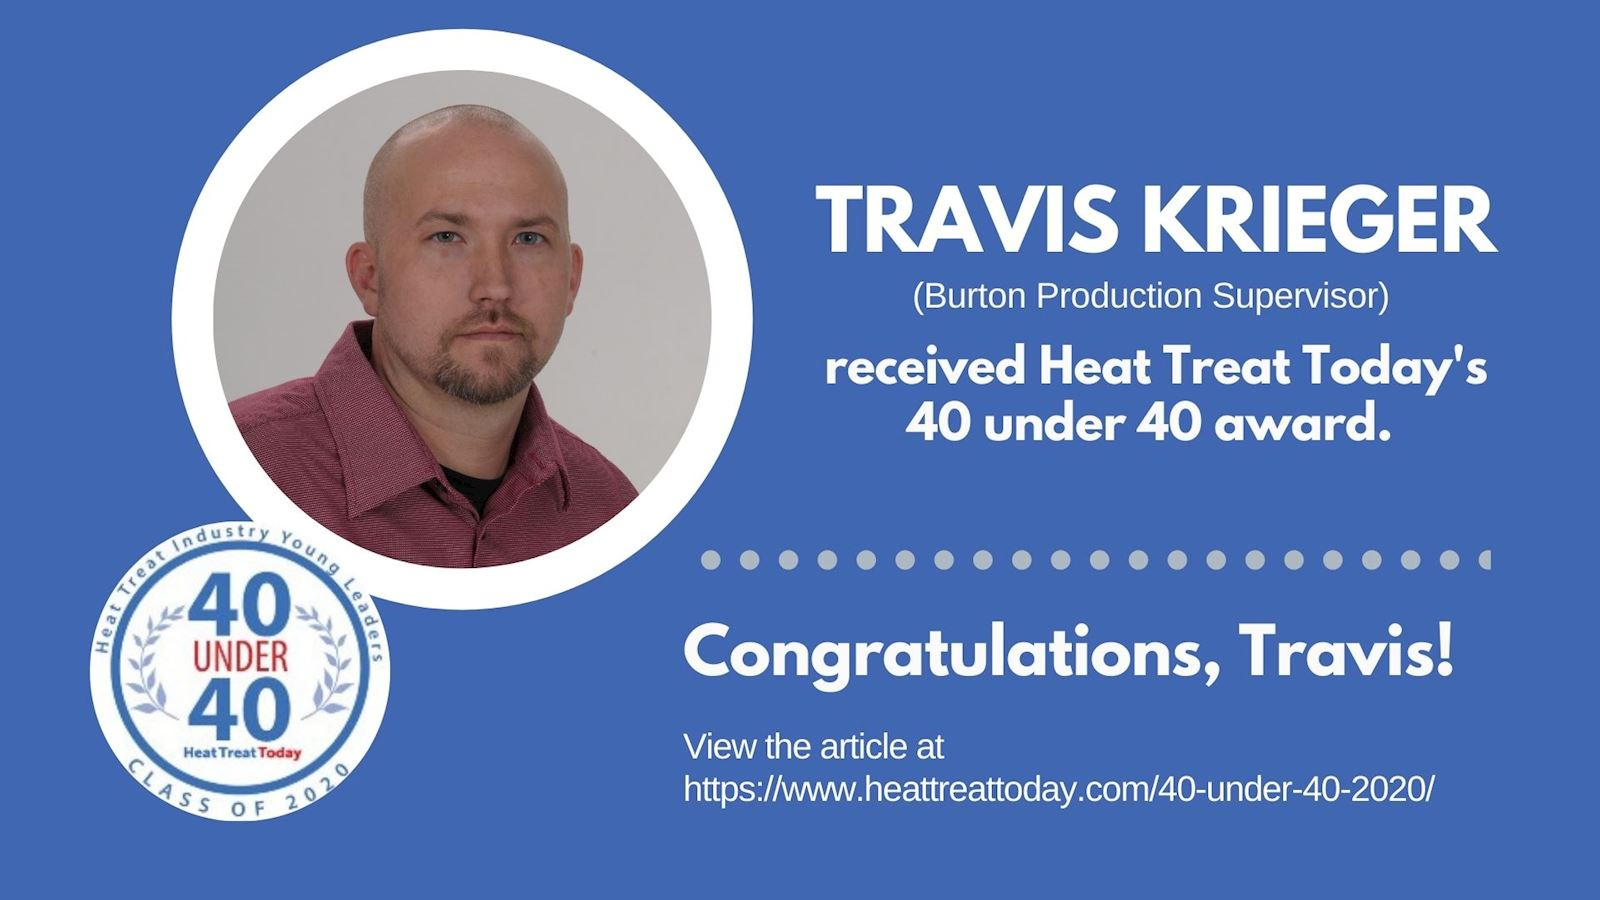 Heat Treat Today's 40 under 40: Travis Krieger